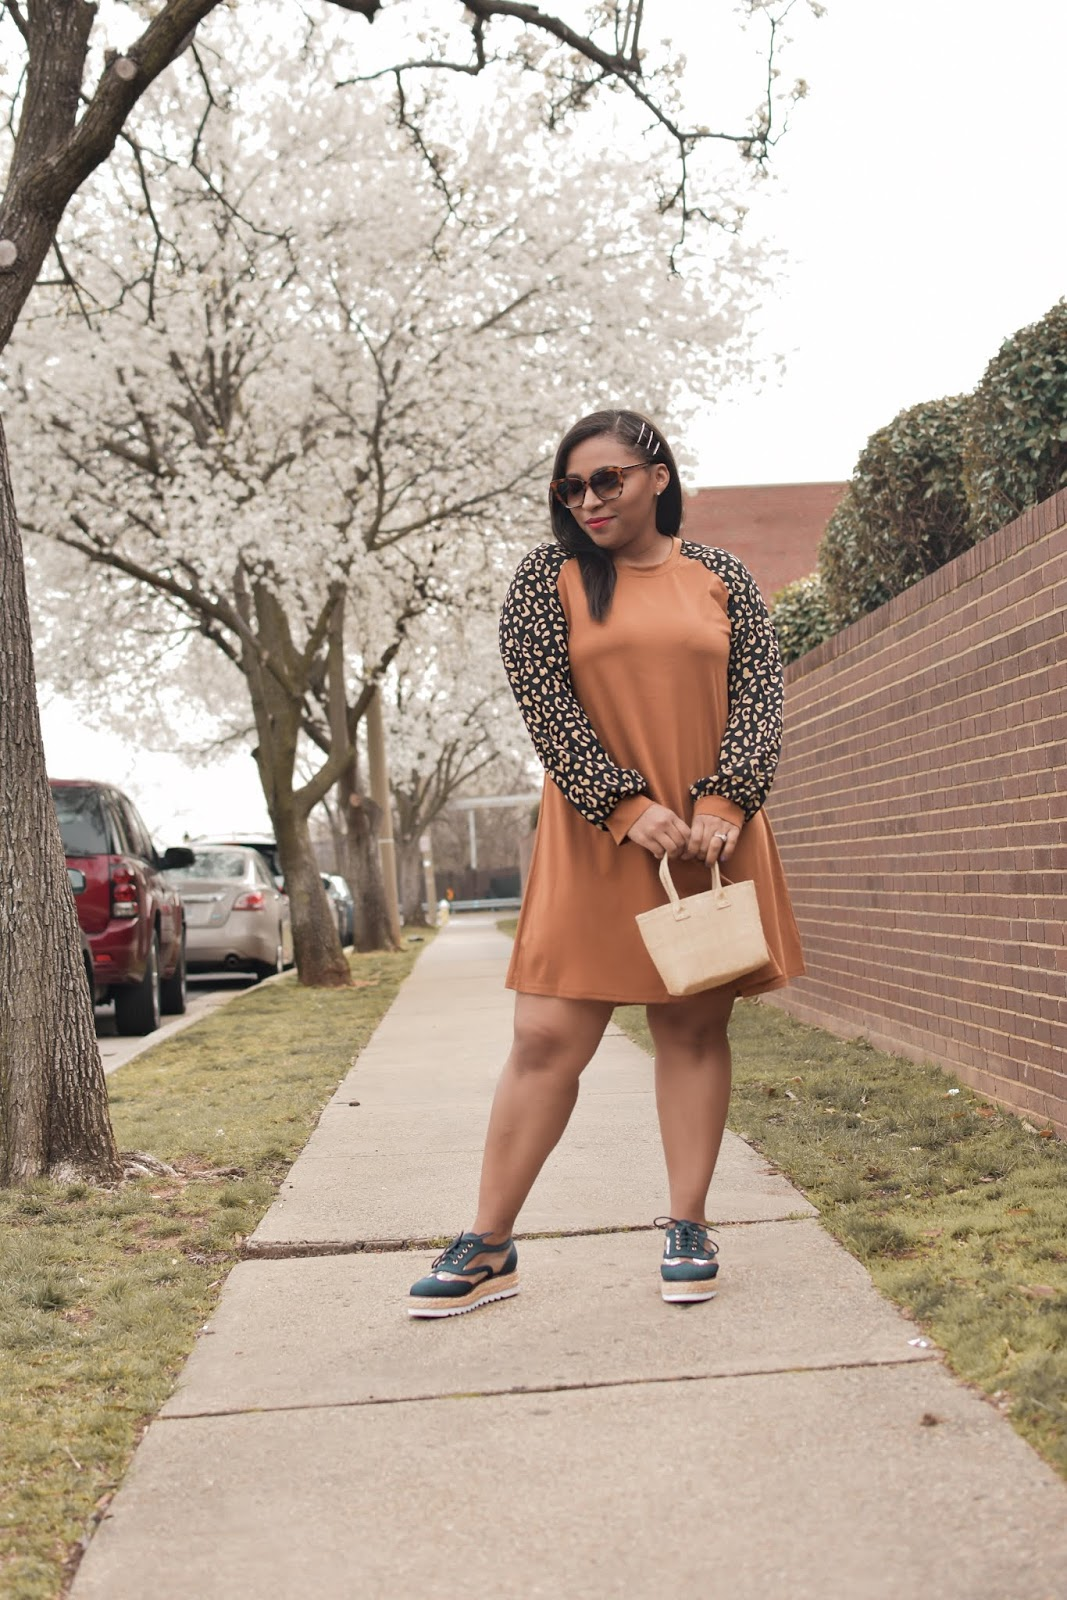 shein, shein reviews, leopard dress, lantern sleeves, spring dresses, trendy spring dresses, pattys kloset, spring outfits